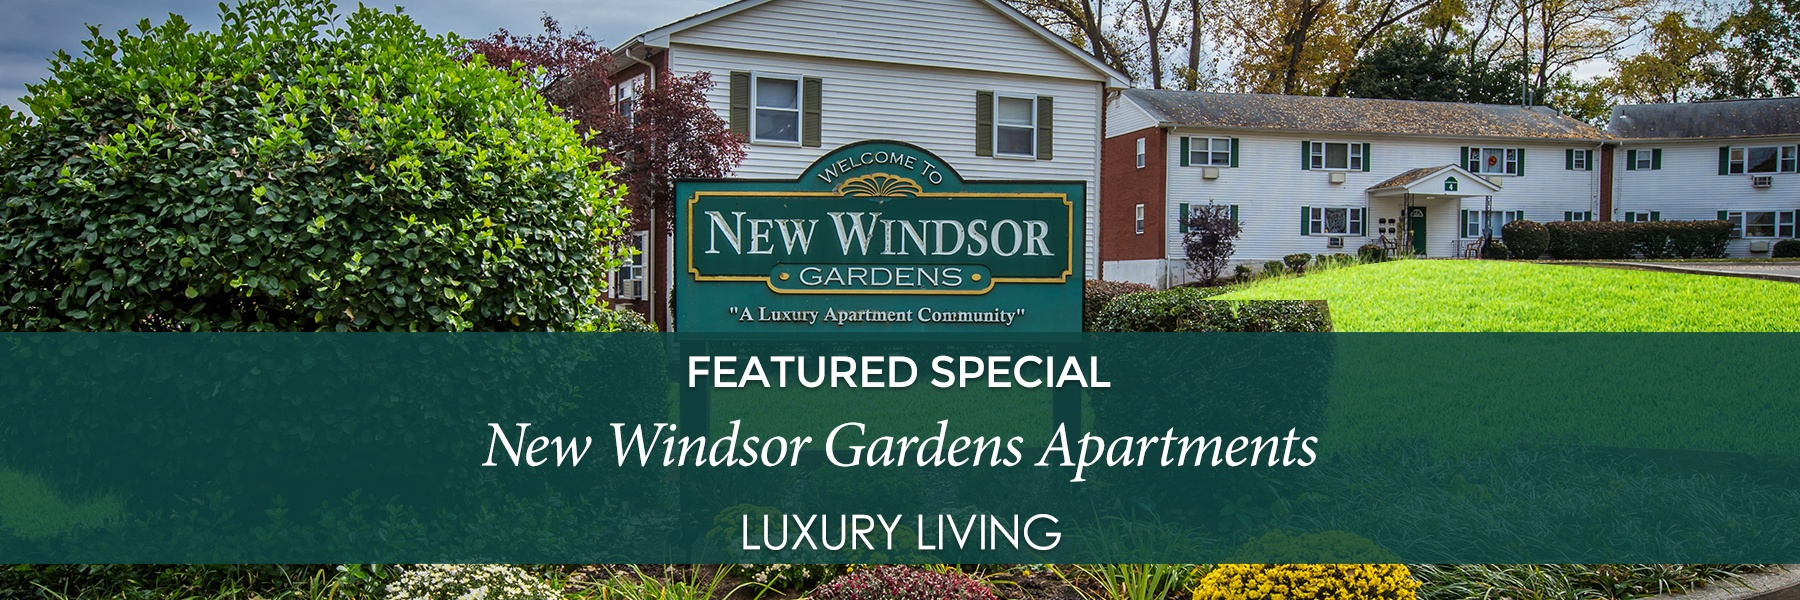 New Windsor Gardens Apartments For Rent in New Windsor, NY Specials